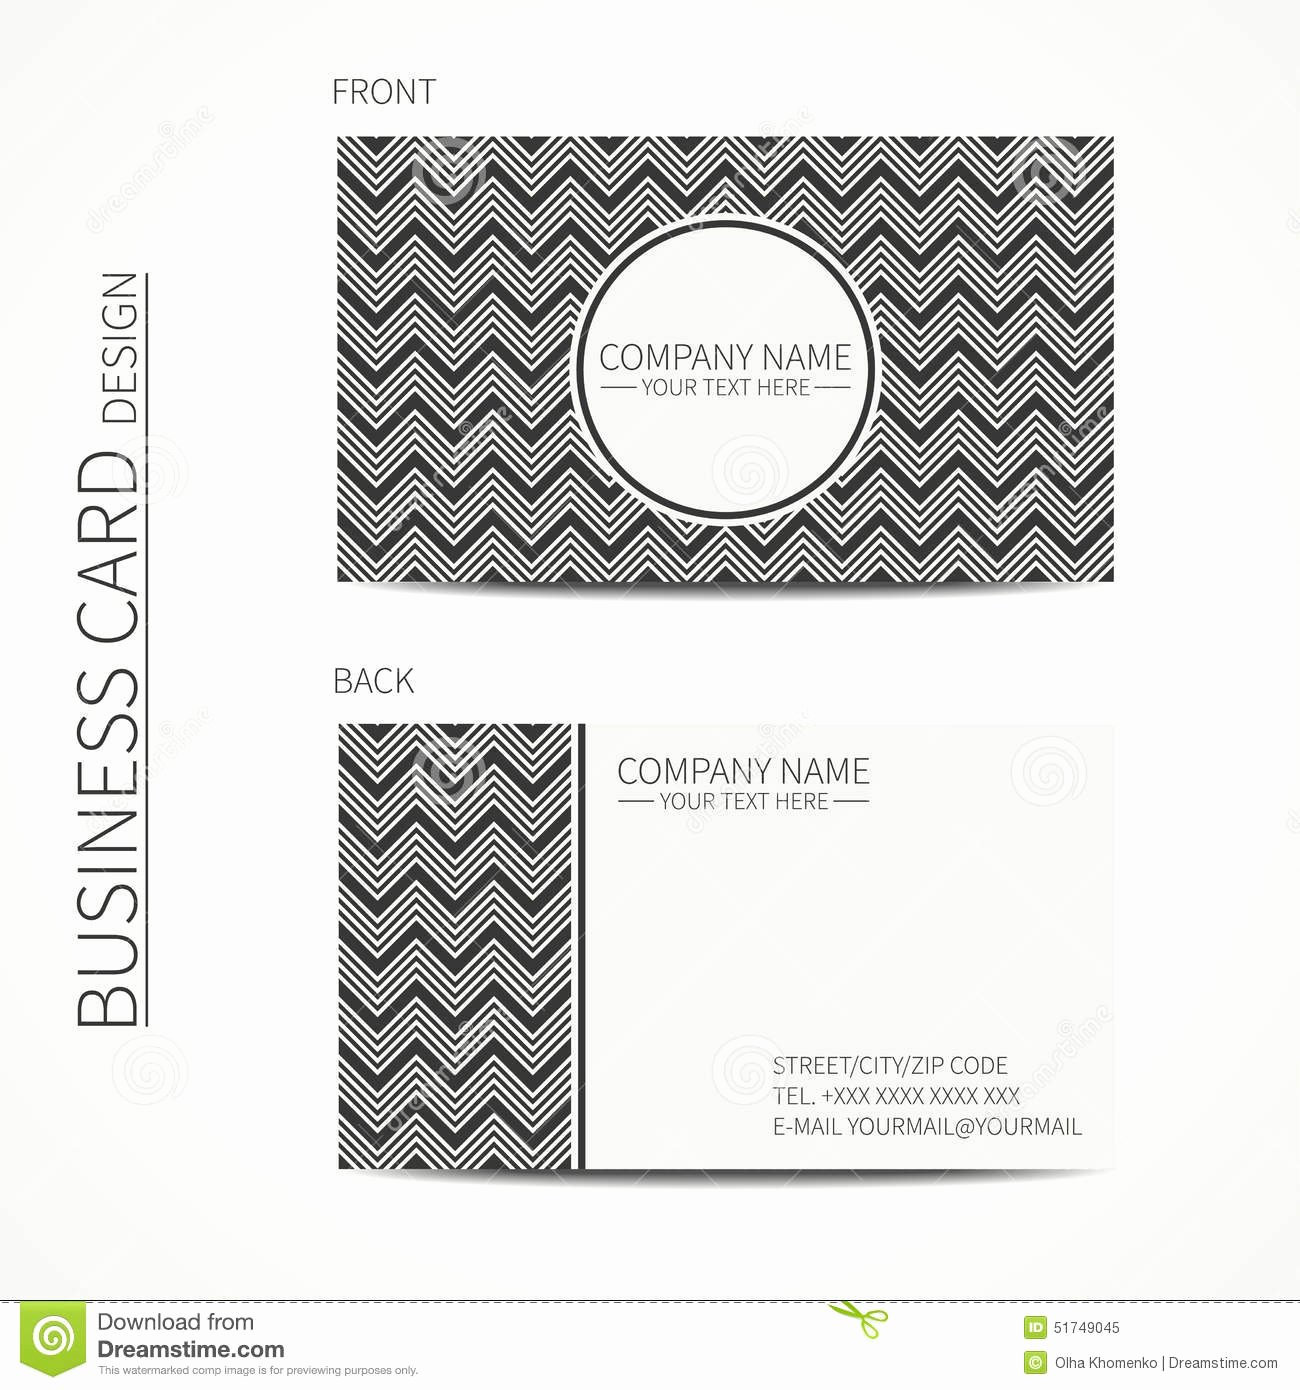 Business Line Card Template Fresh Geometric Monochrome Business Card Template with Vector